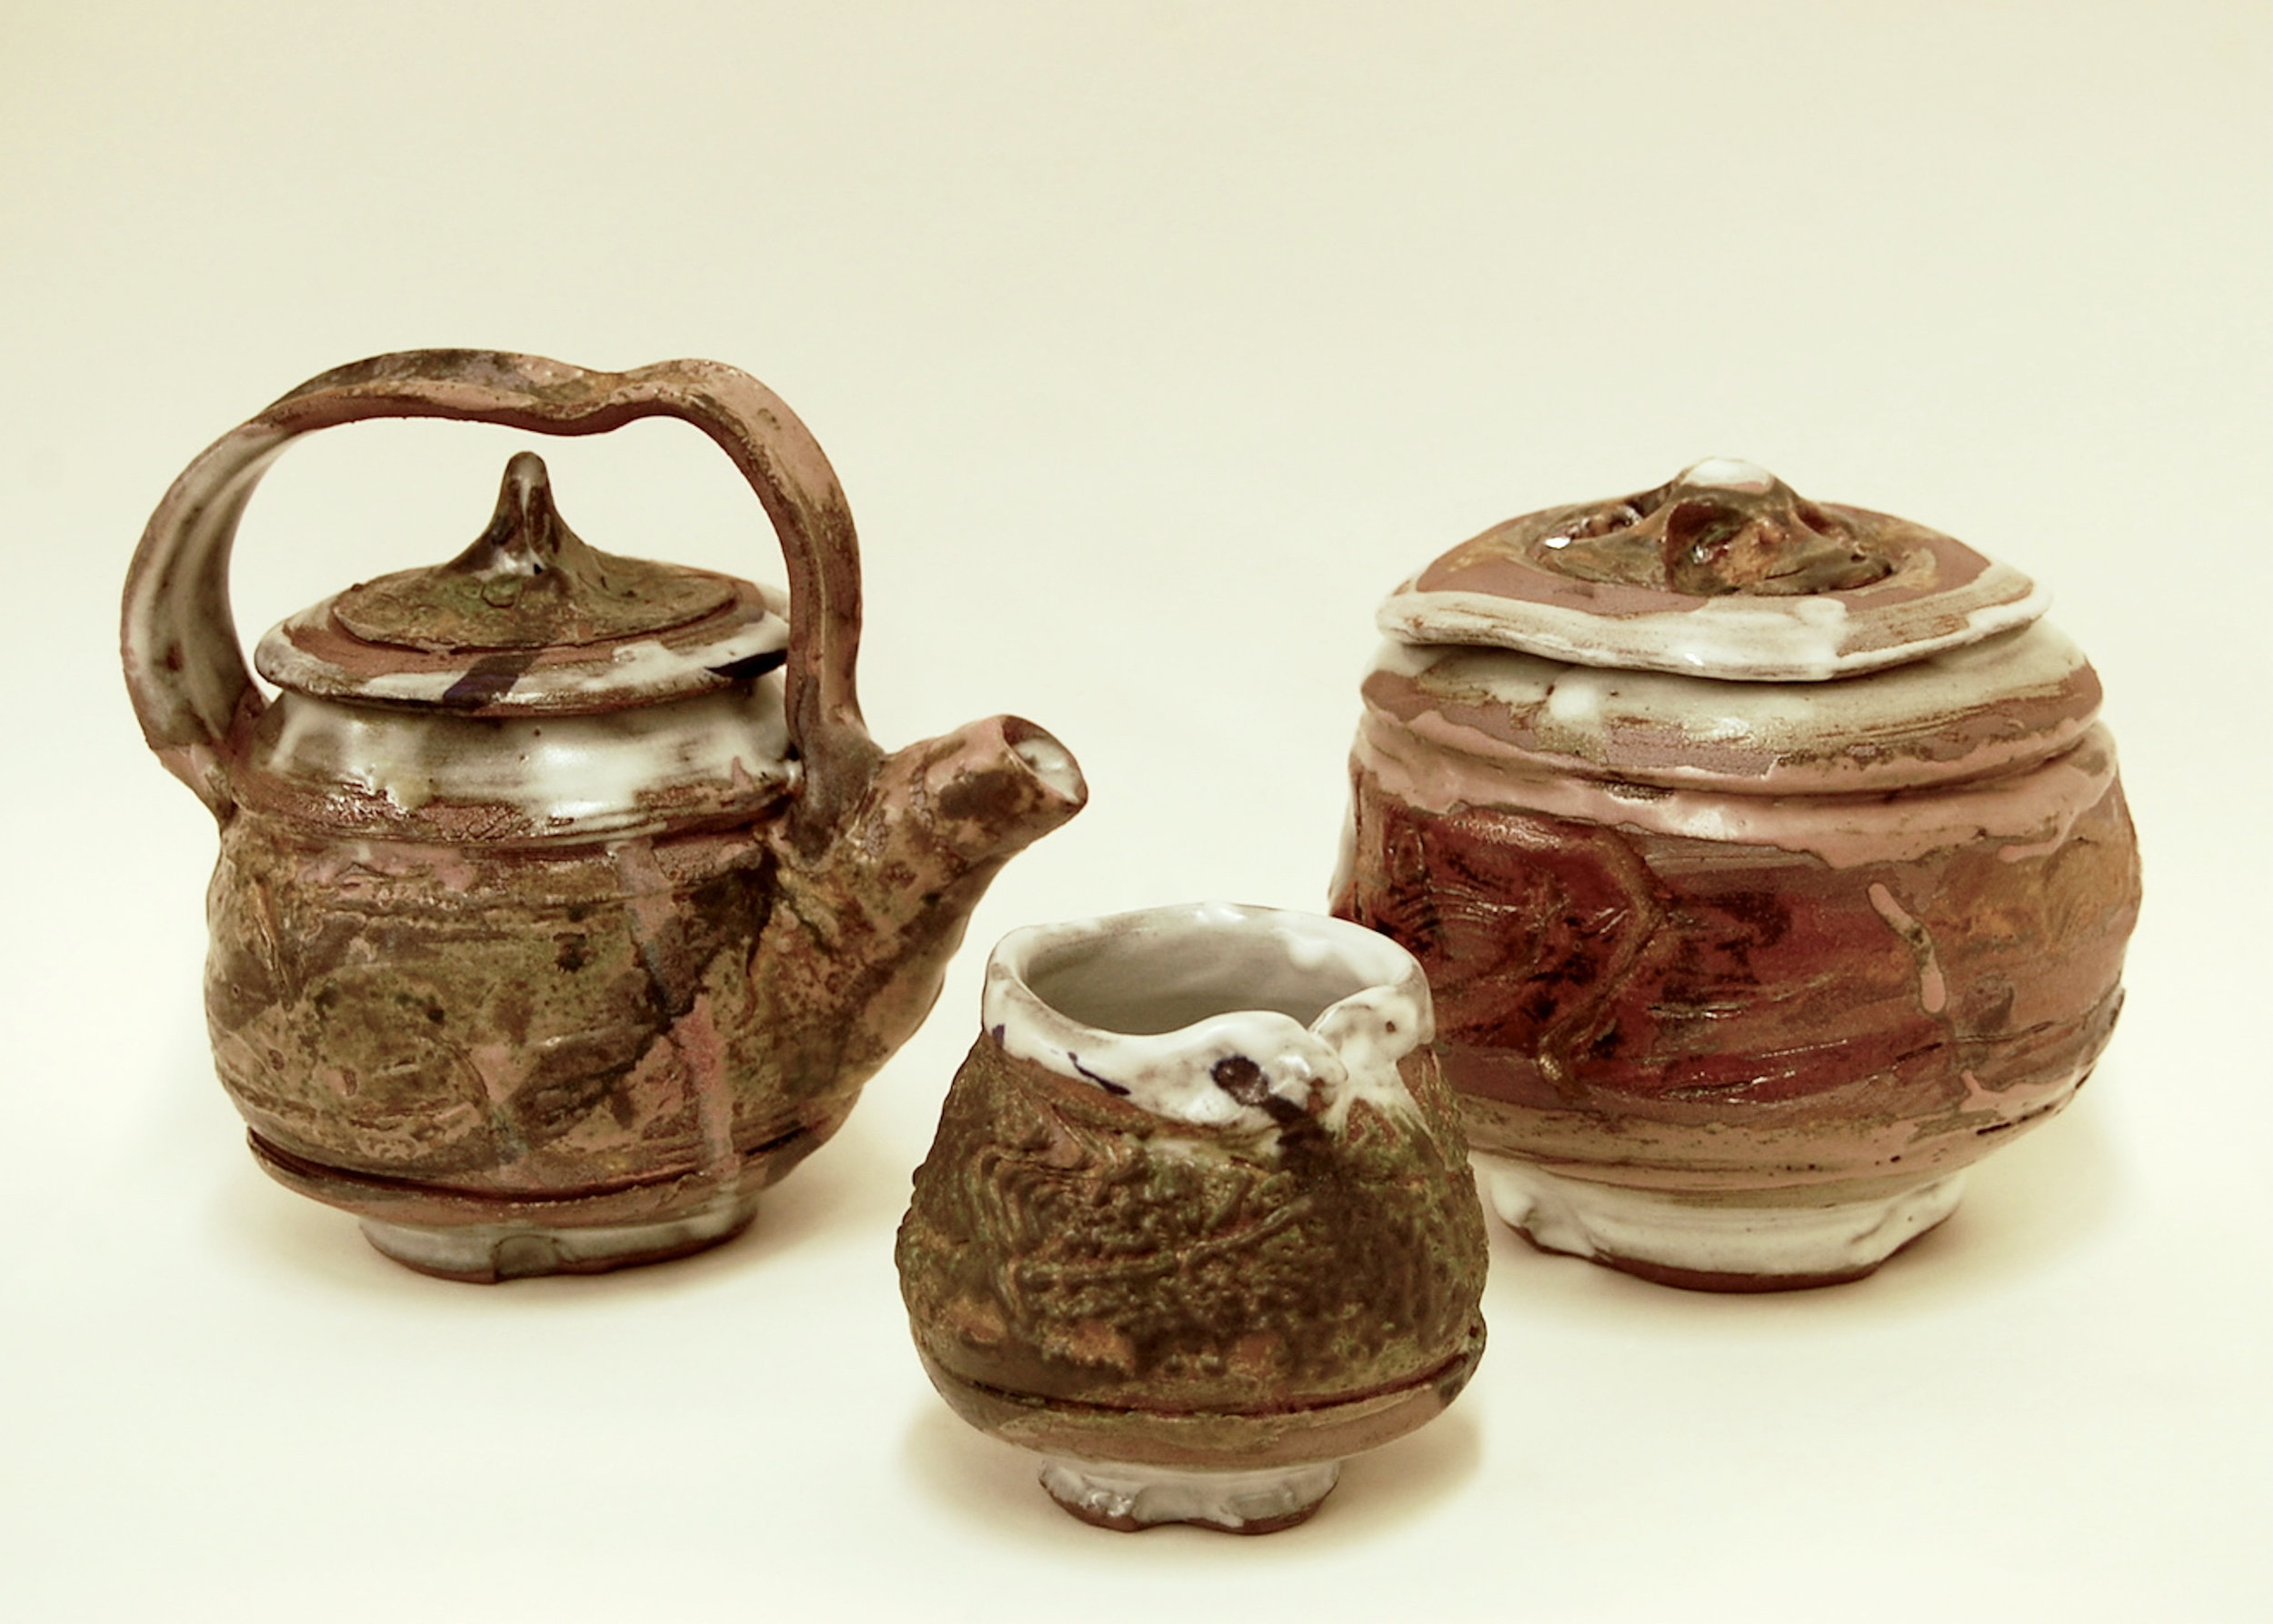 Burnt Tea Set.jpg